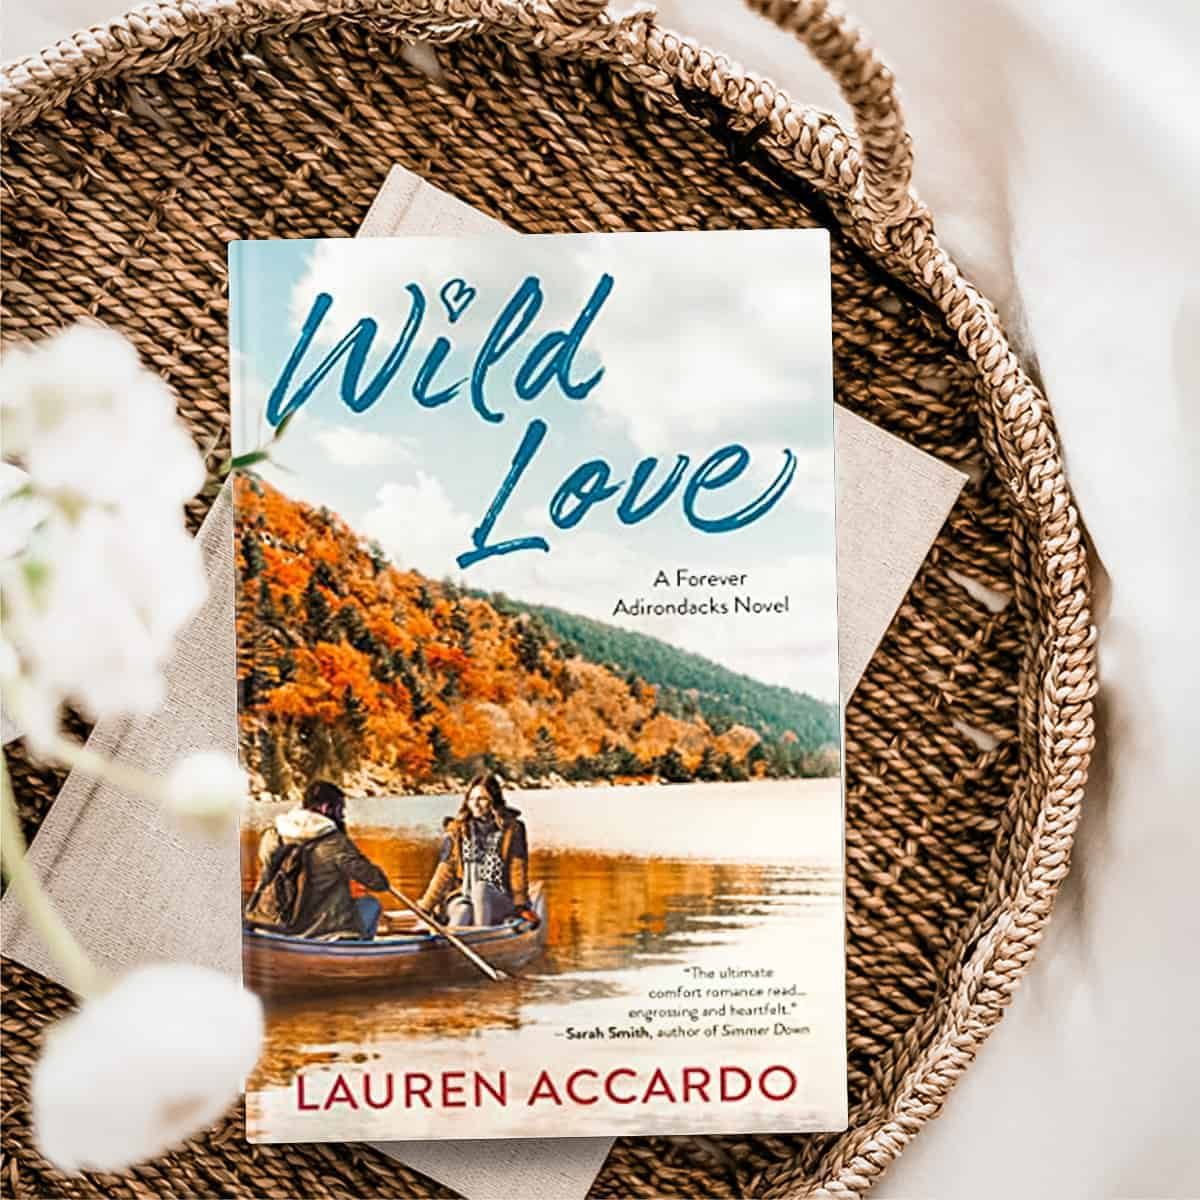 Enjoy this excerpt from Wild Love by Lauren Accardo! Wild Love is a small-town romance, the first book in the Forever Adirondacks series, and the debut novel of author Lauren Accardo.